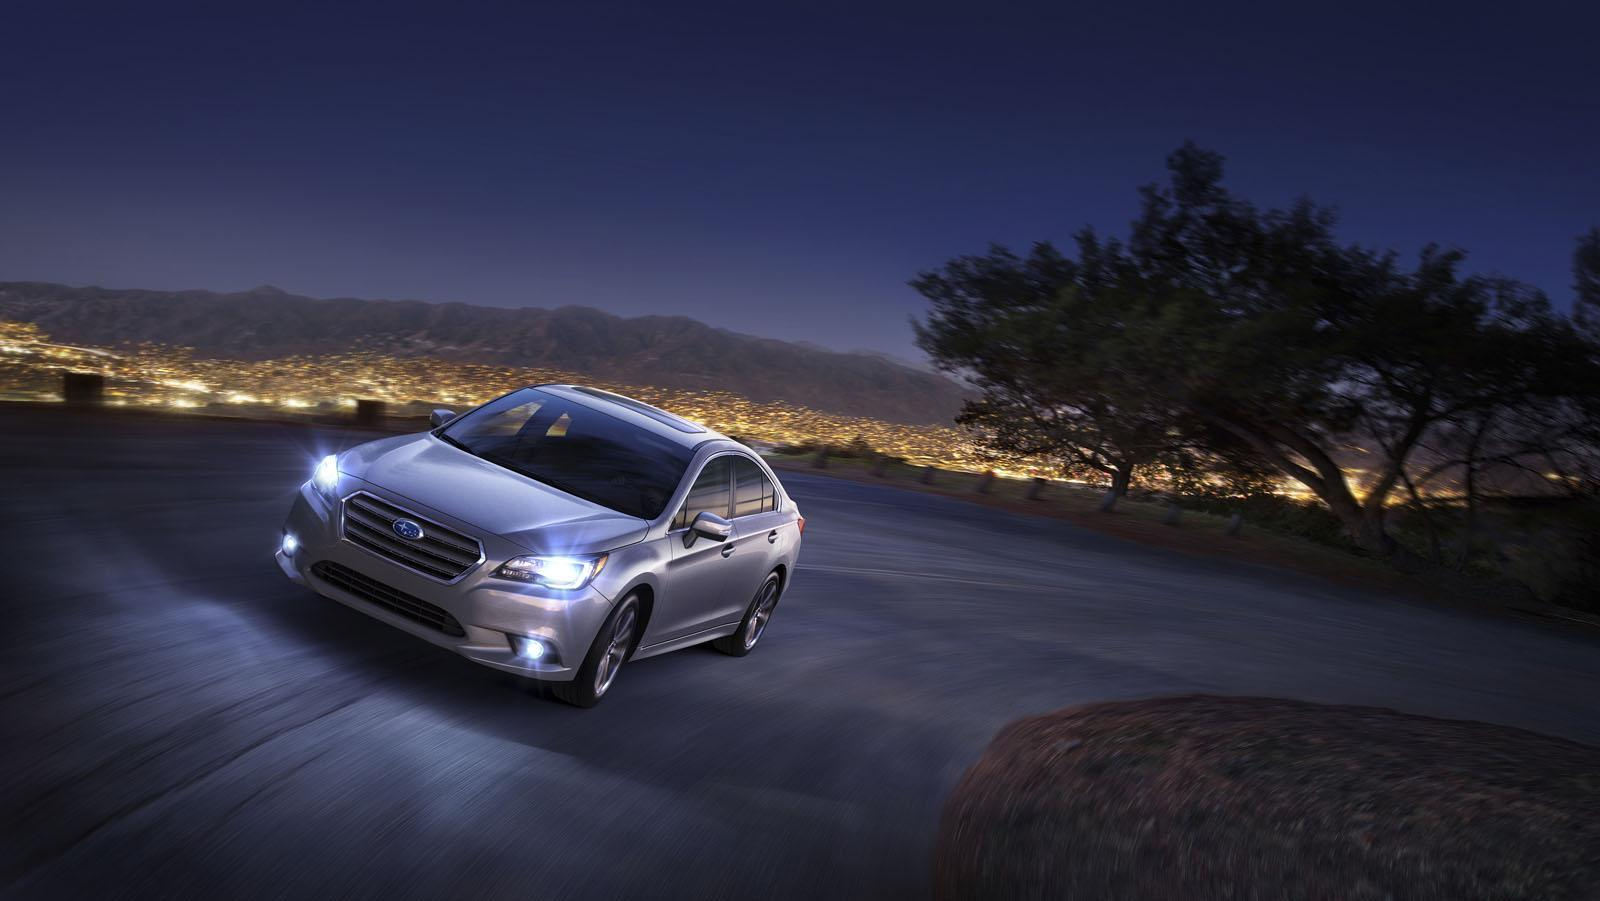 Image for 2015 Subaru Legacy wallpapers